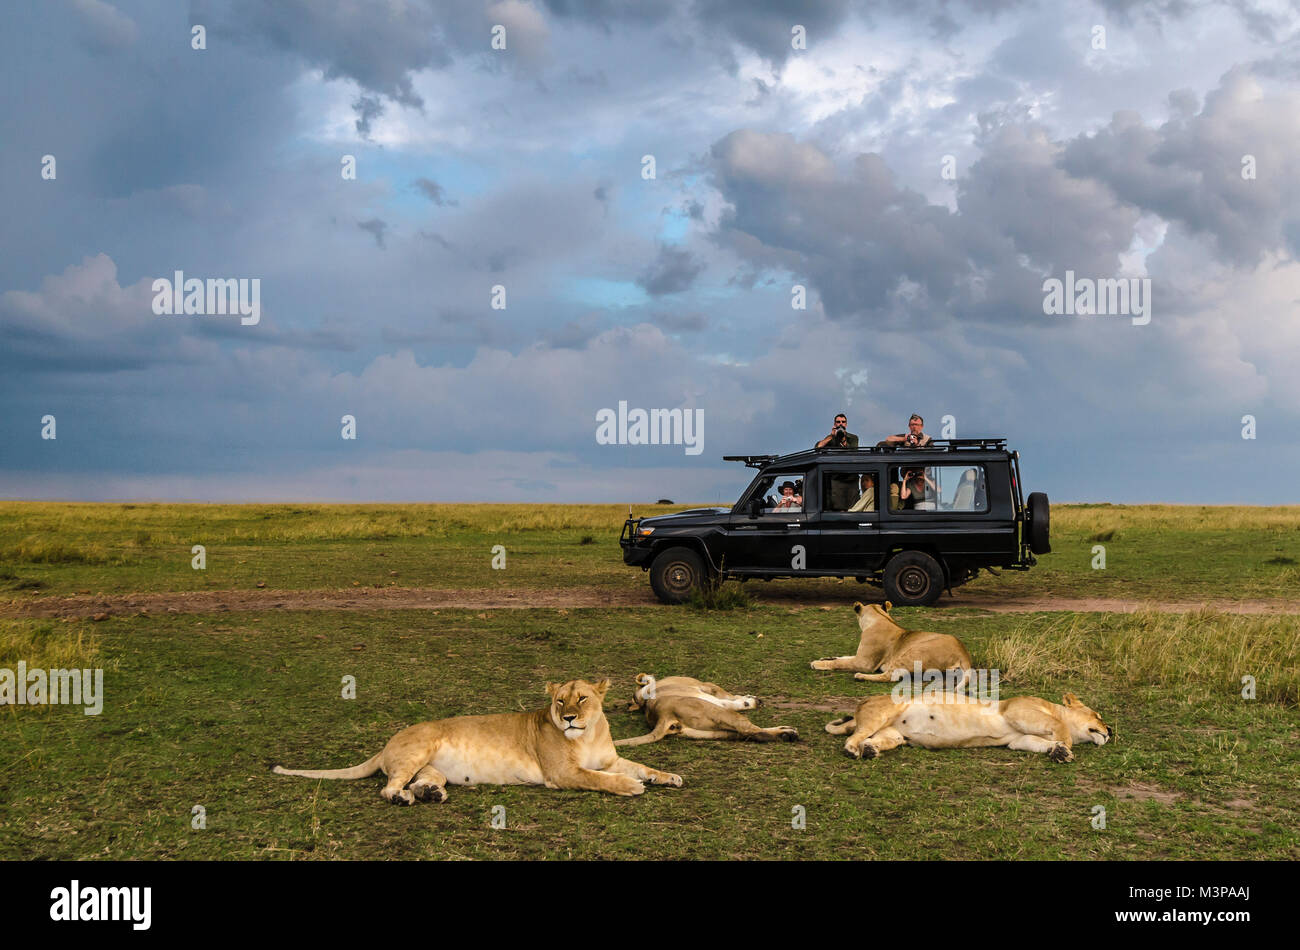 A game drive vehicle with safari guests watching lions under a cloudy sky in the Maasai Mara, Kenya. - Stock Image